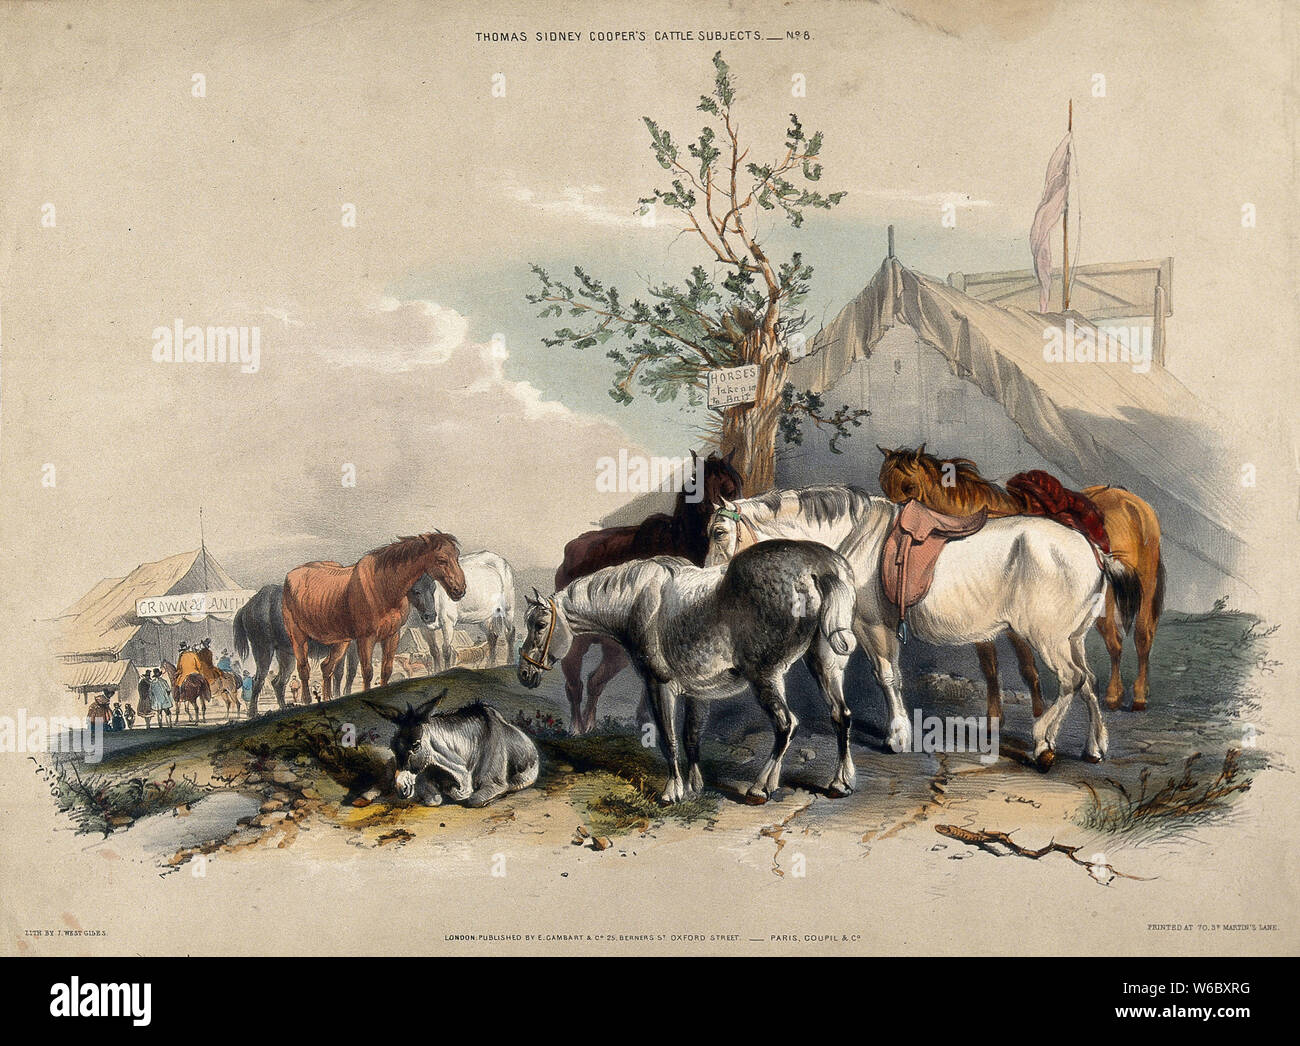 A group of horses halting on a journey for refreshment and a rest outside fairground tents. Coloured lithograph by J. W. Giles after T. S. Cooper. Stock Photo